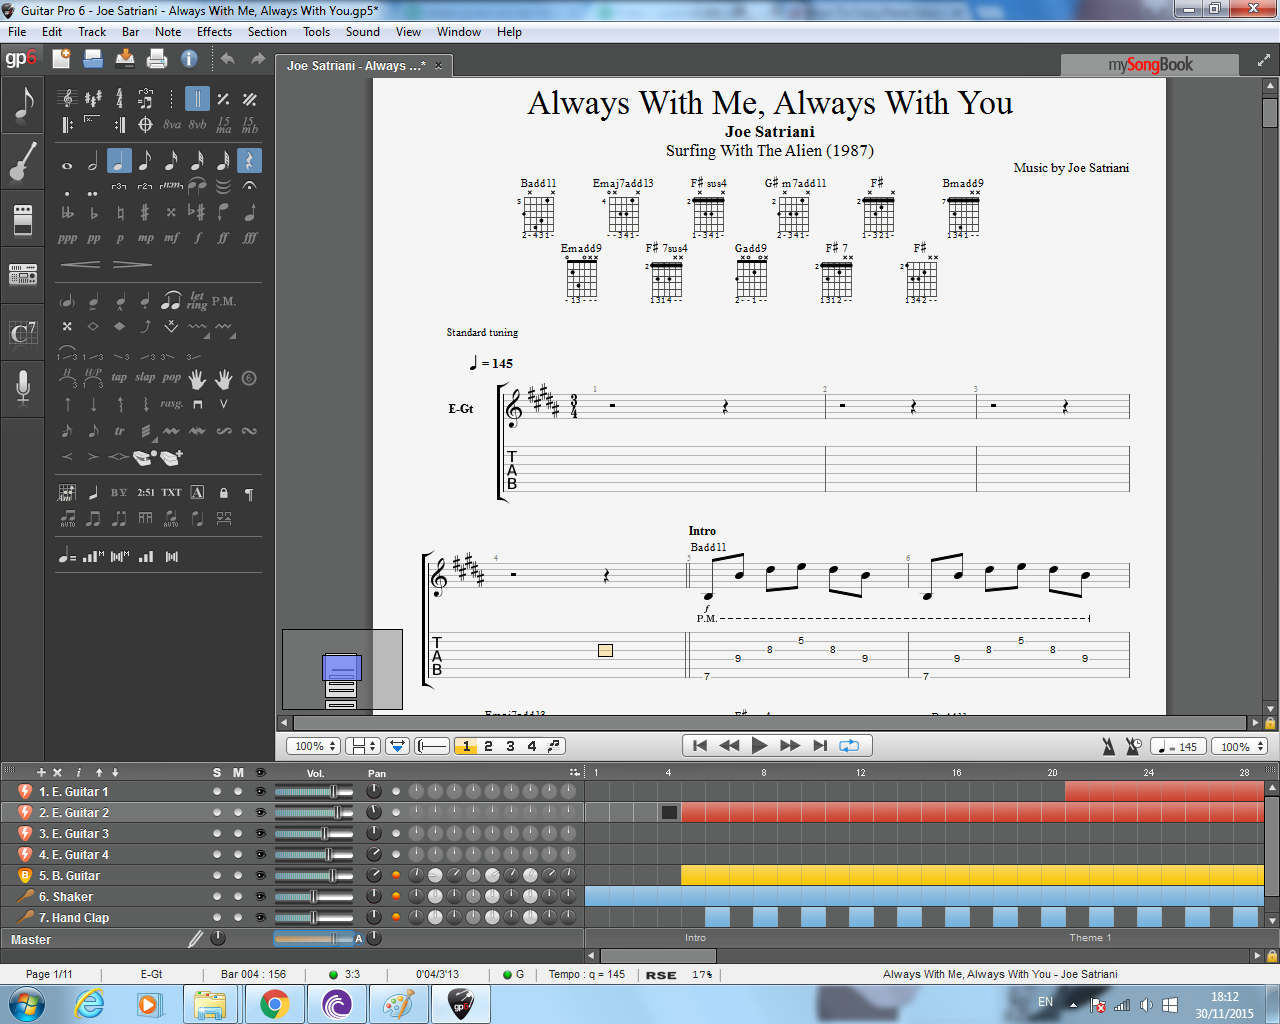 transcribe from tab to Guitar Pro